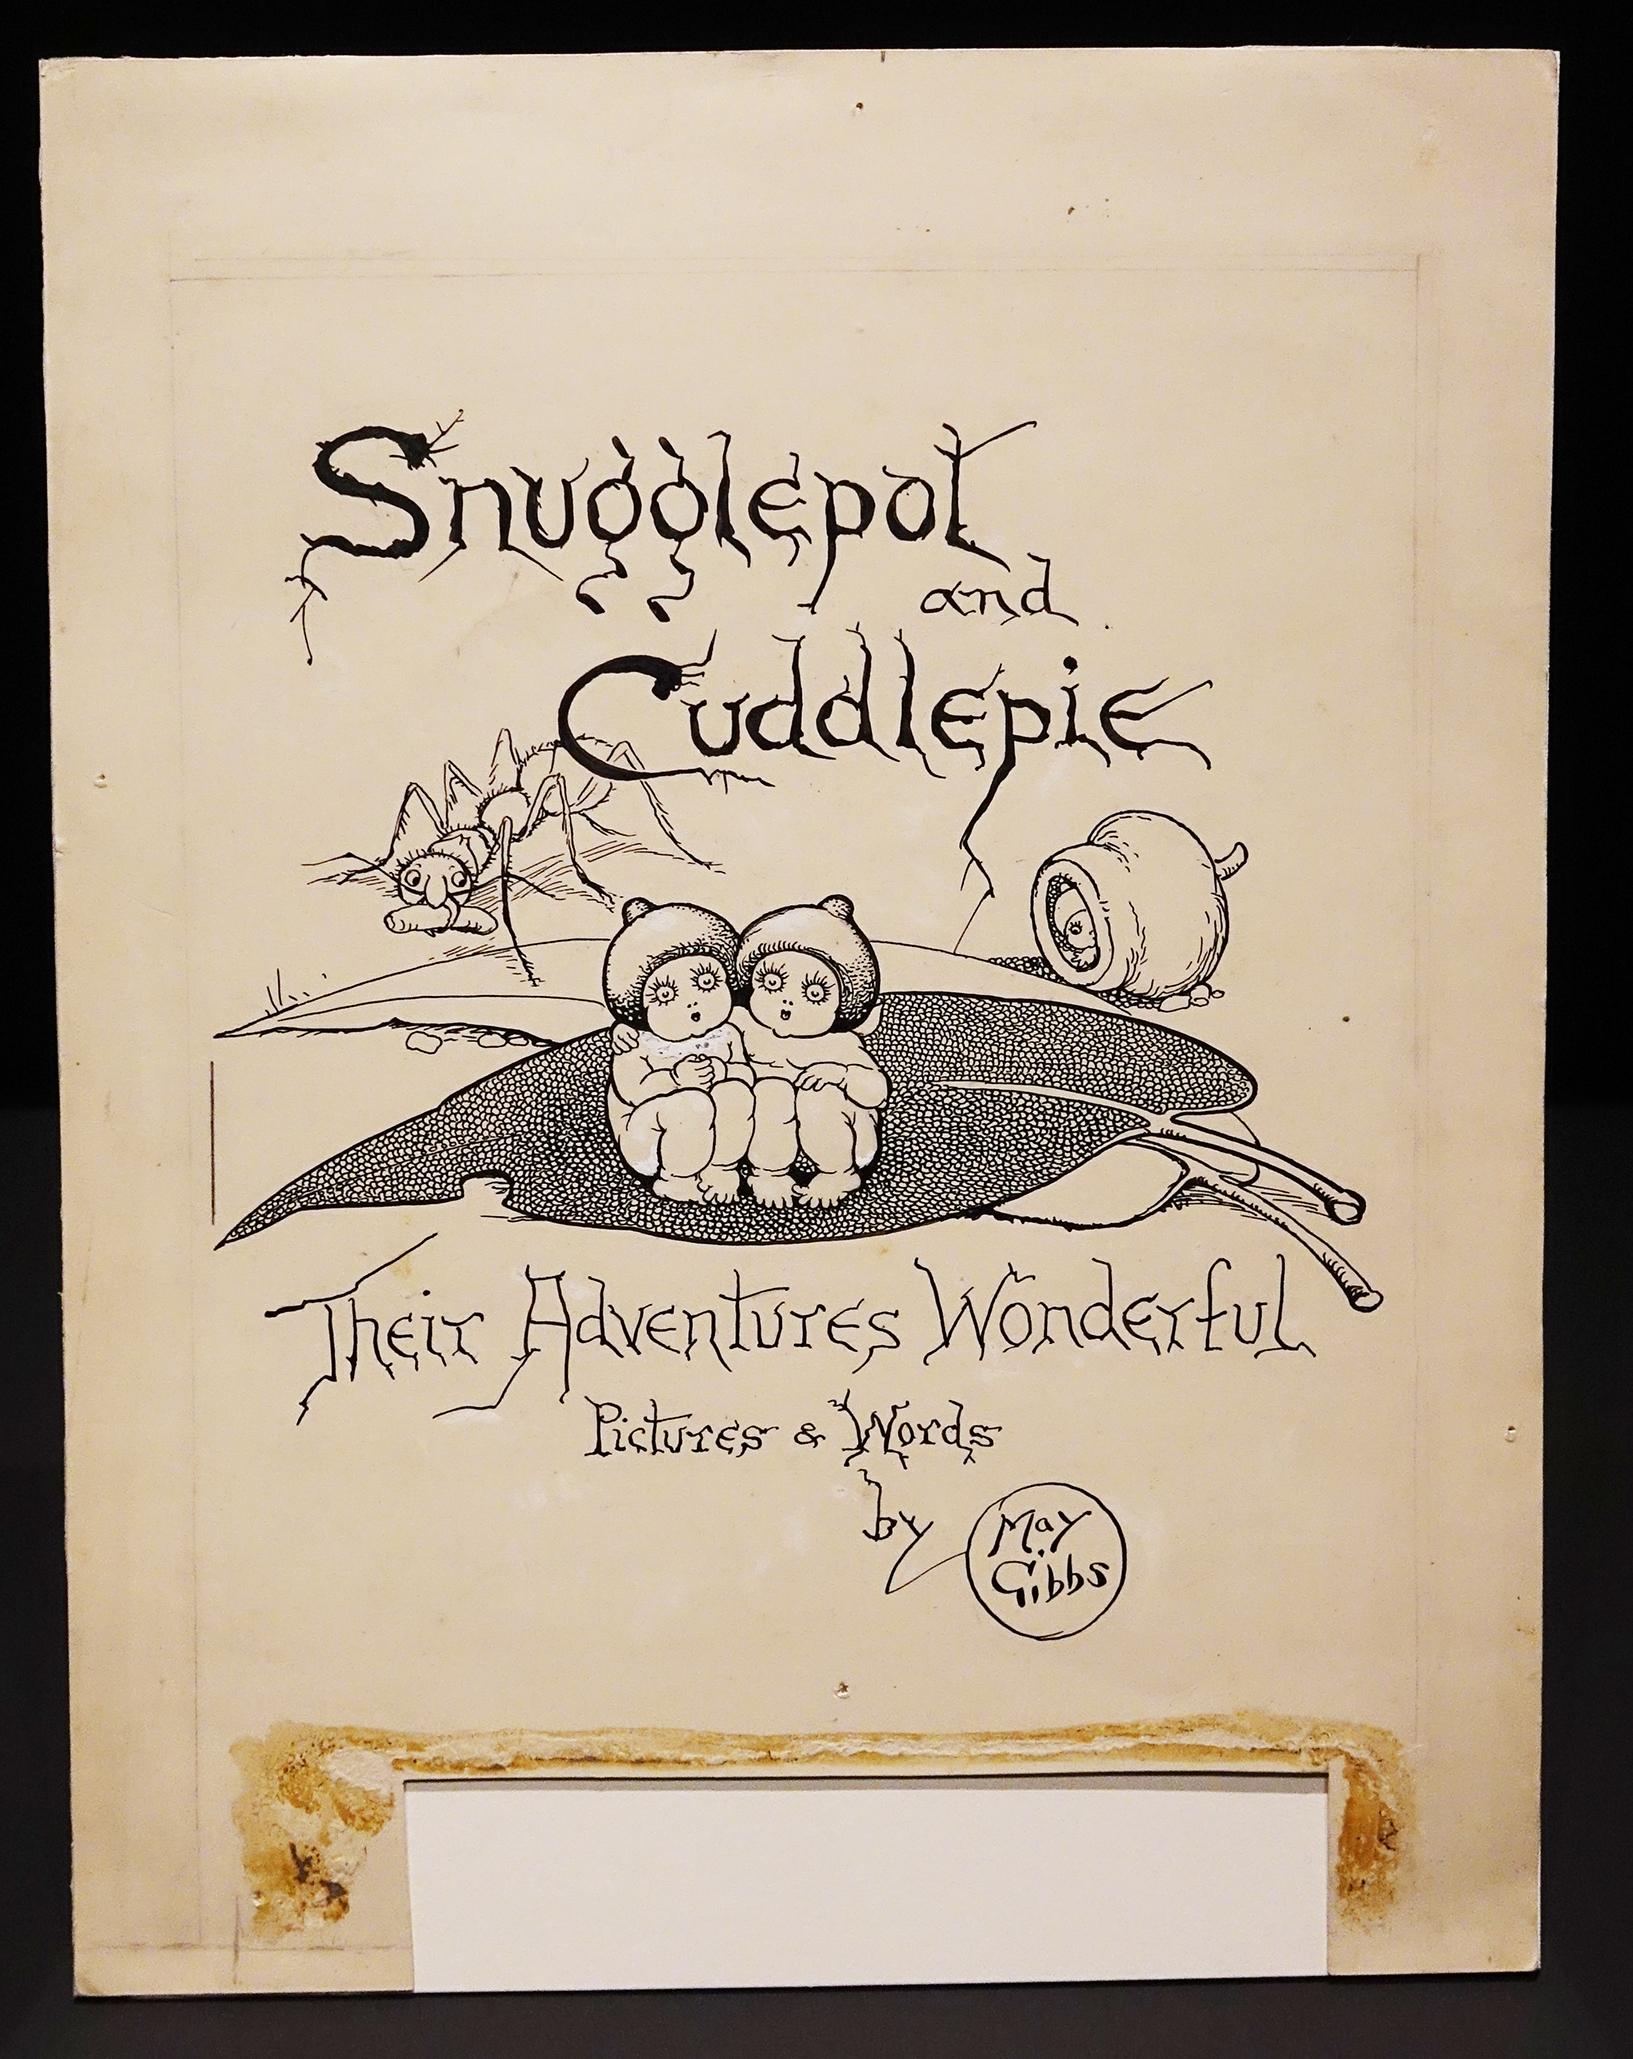 Drawing of title page for Snugglepot and Cuddlepie featuring an image of two miniature babies with gumnut hats sitting on a gum leaf.